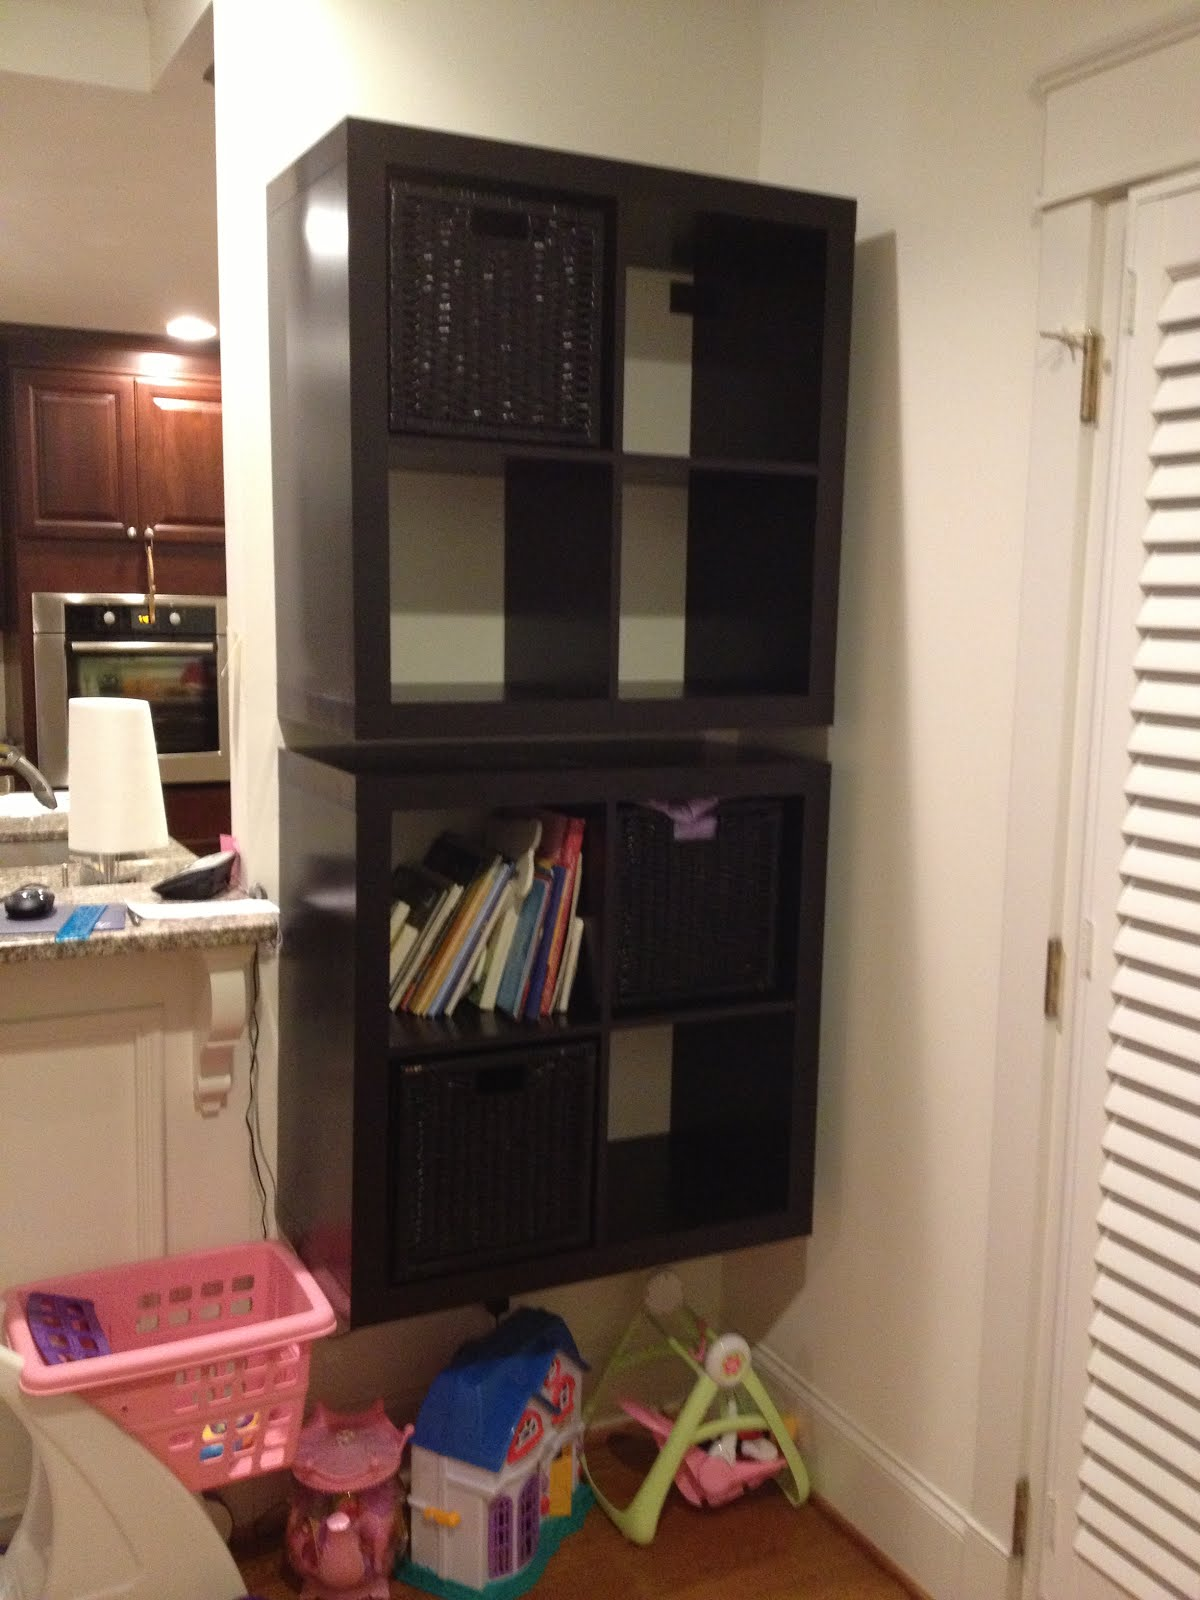 Ikea Expedit Wardrobe How To: Mount A Safe Floating 2 X 4 Expedit Shelf - Ikea